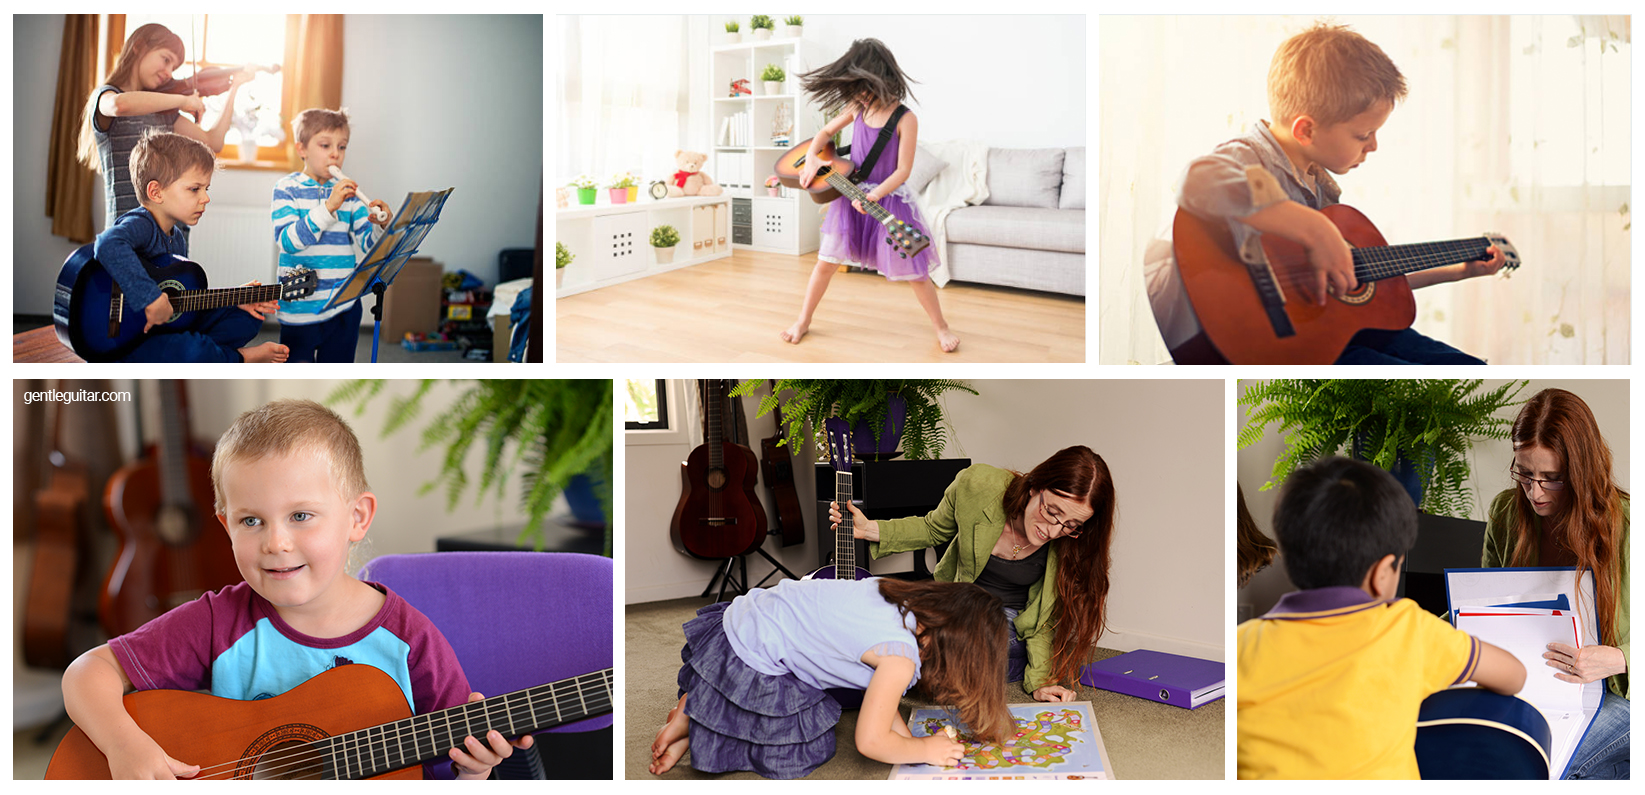 5 year old kids learn guitar